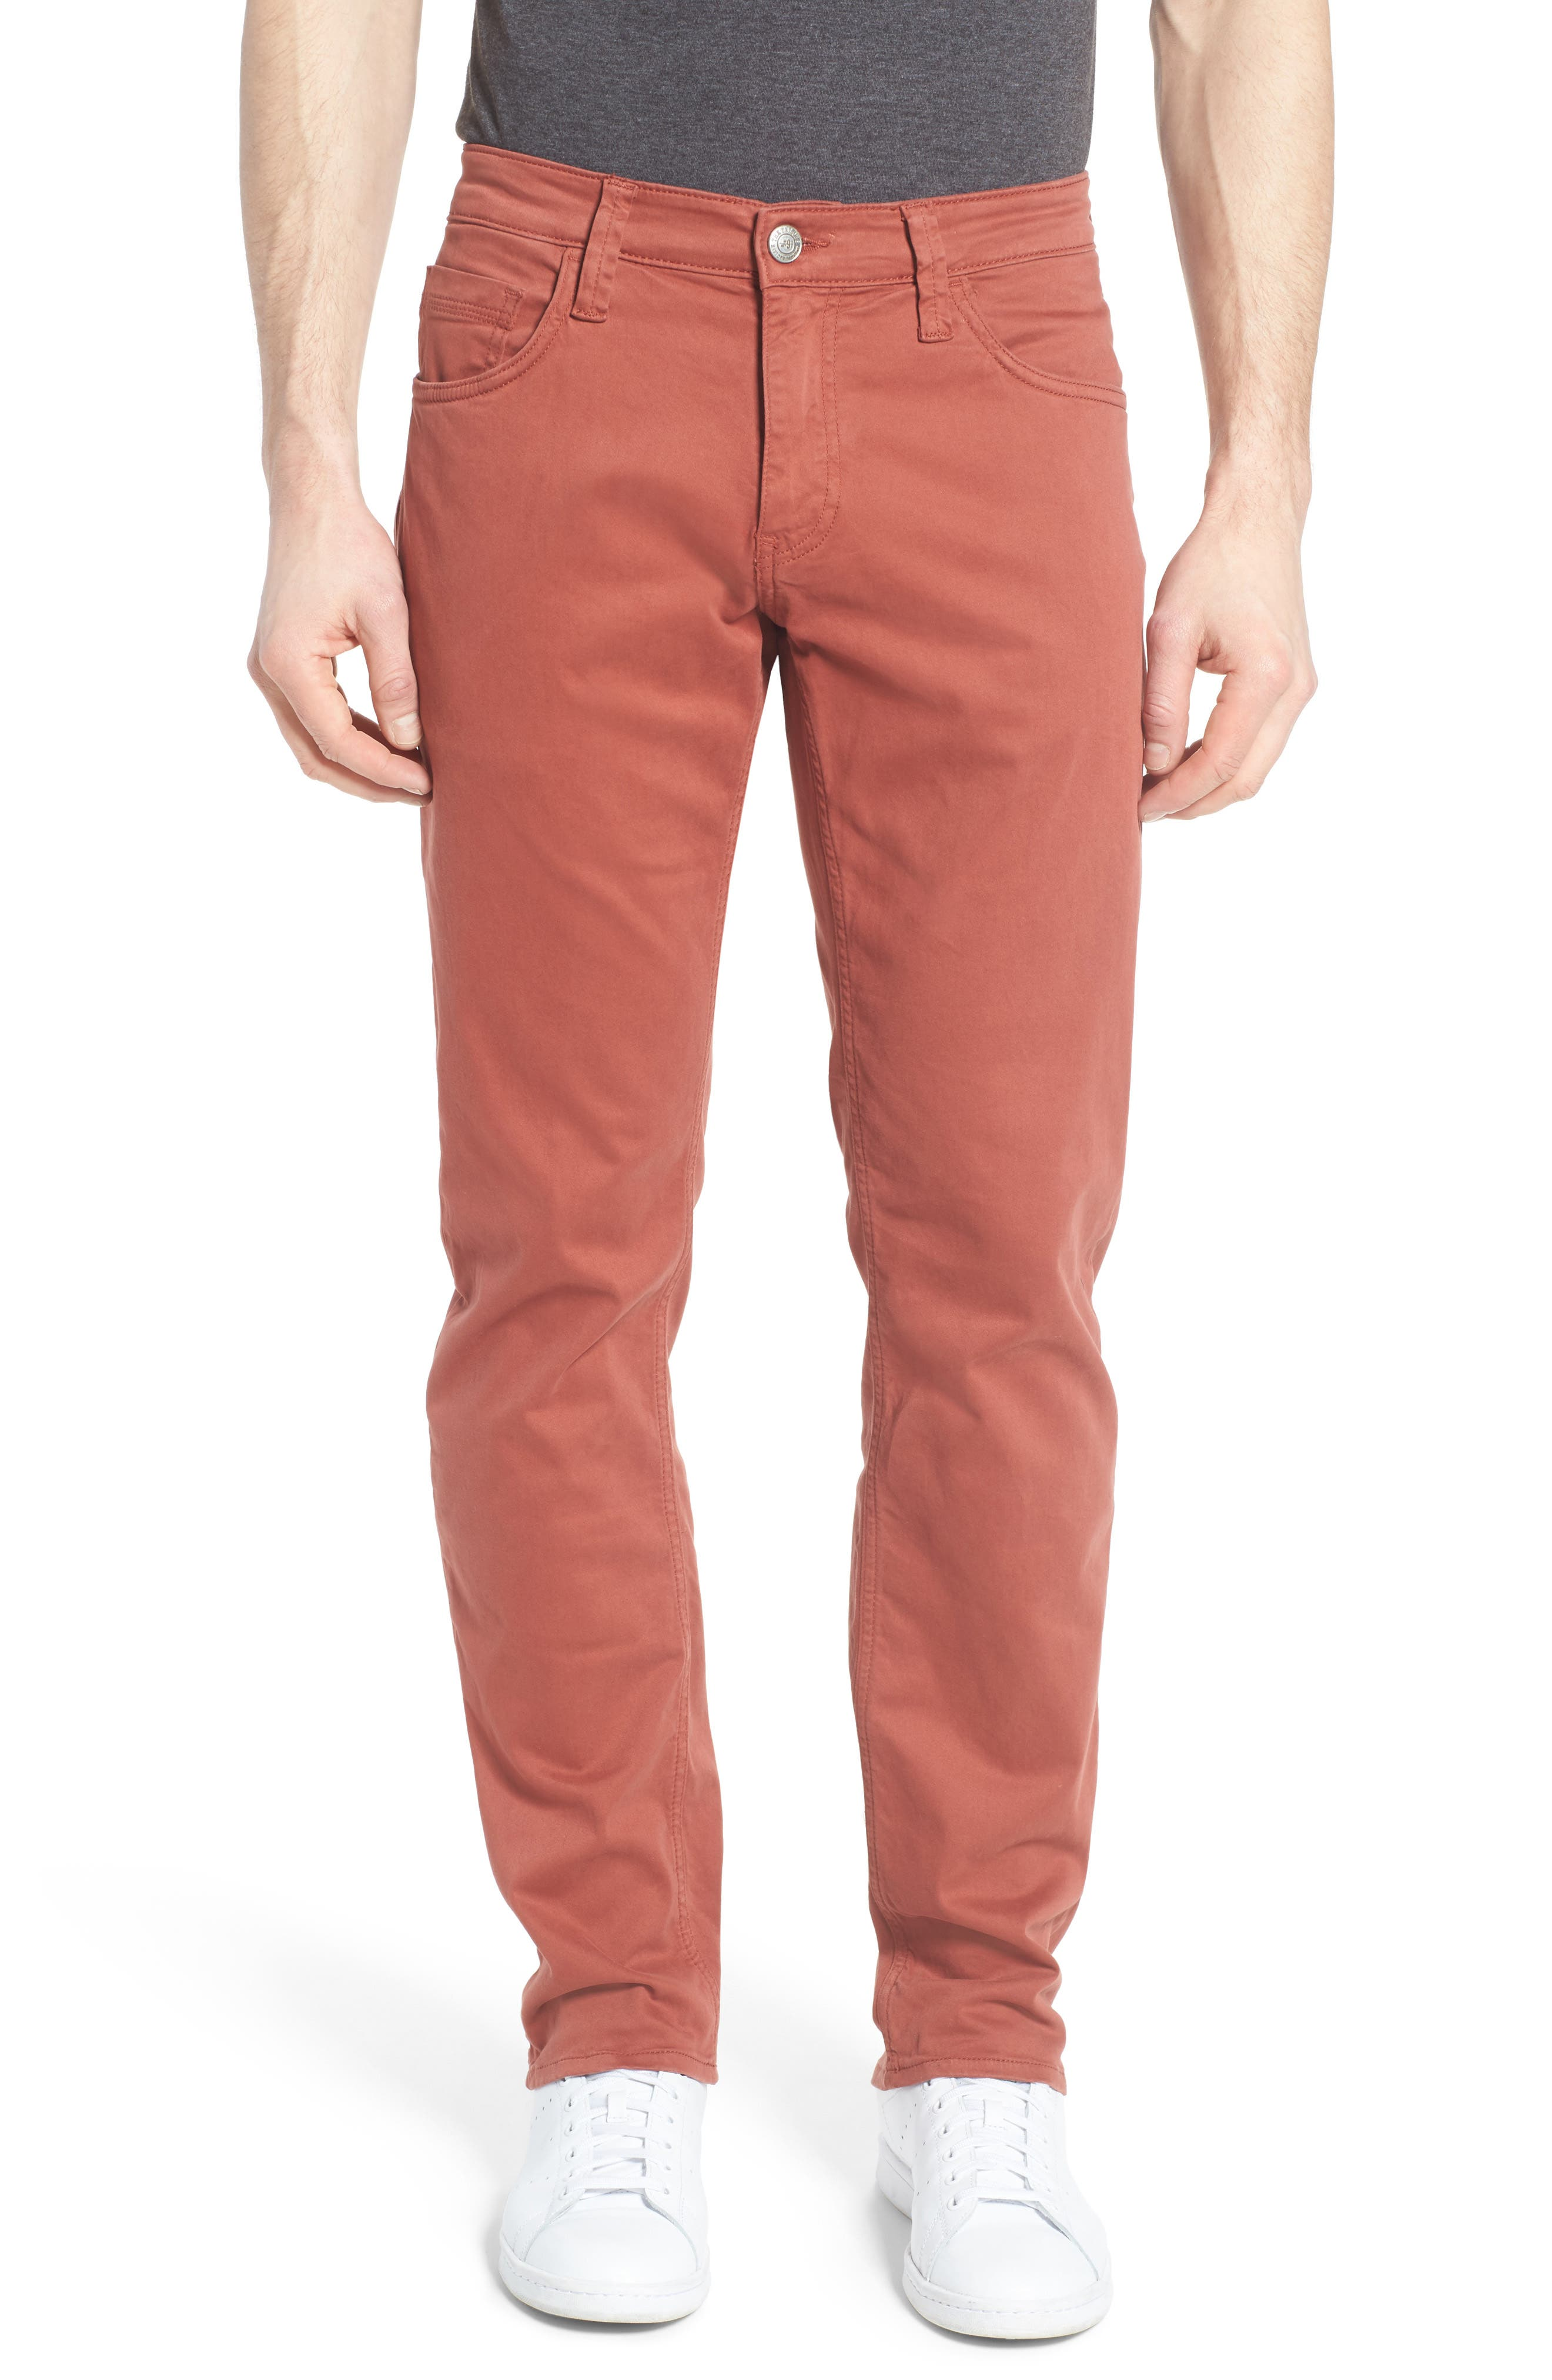 Alternate Image 1 Selected - Mavi Jeans Zach Straight Leg Jeans (Brick Red Twill)